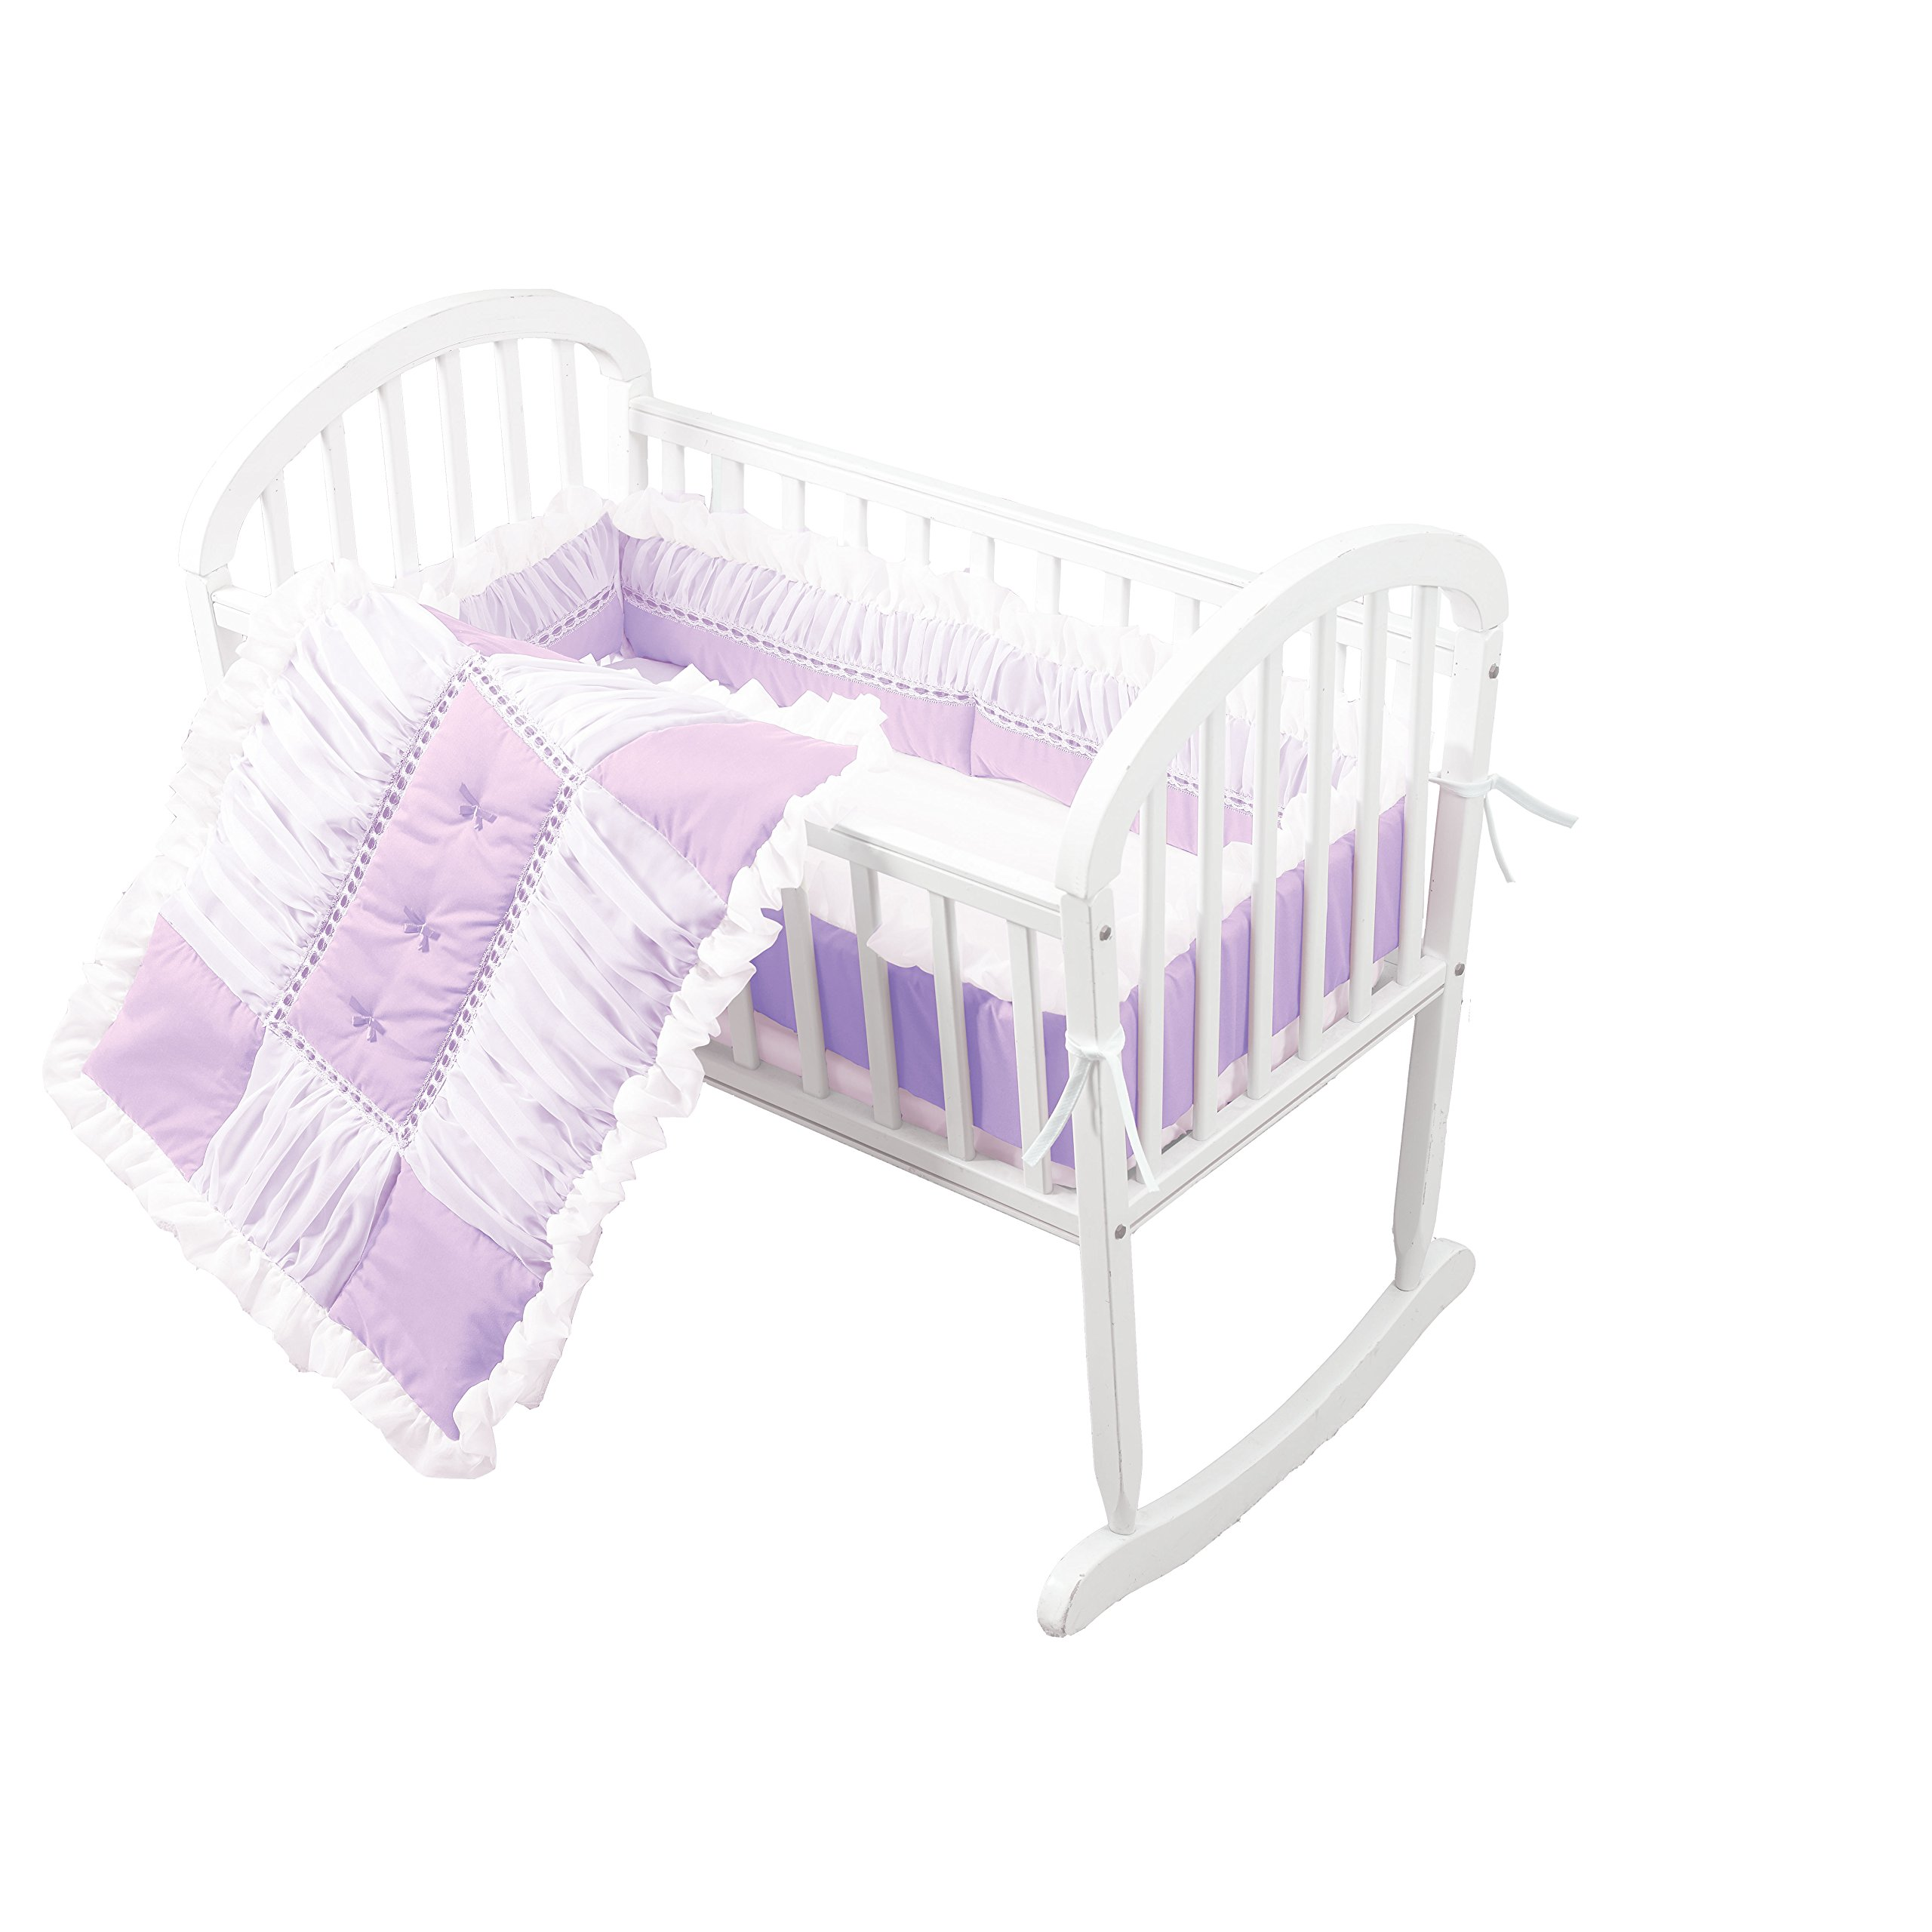 Baby Doll Sweet Touch Baby 3 Piece Cradle Bedding Set, Lavender by Baby Doll